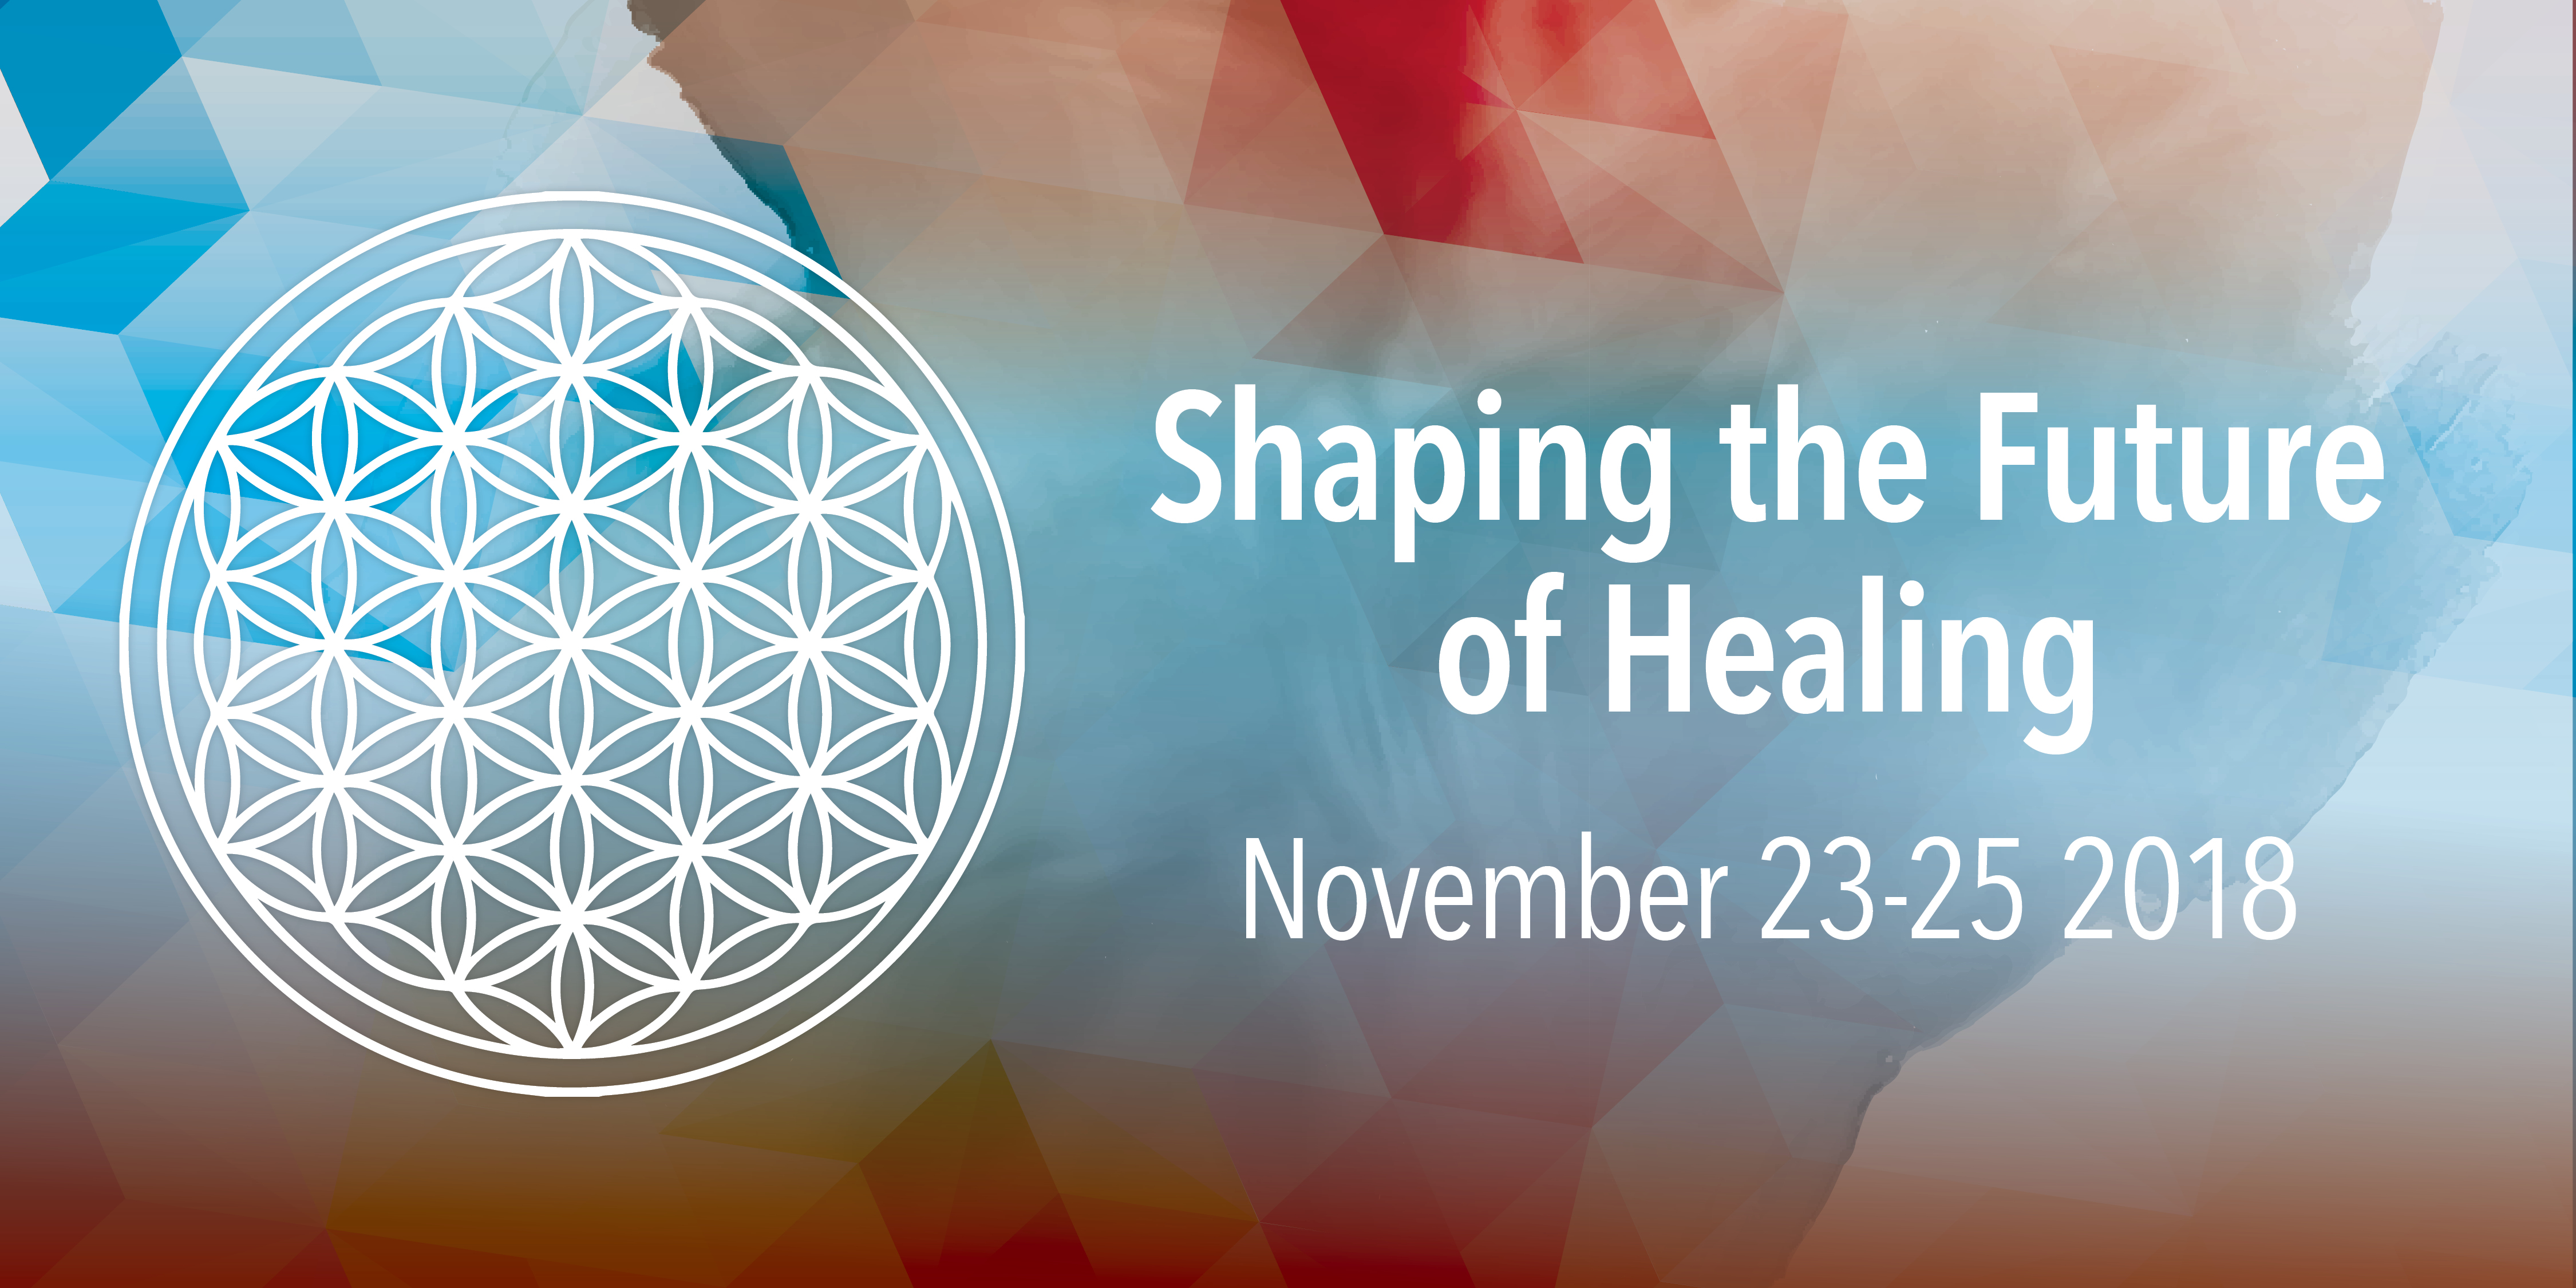 Shaping the Future of Healing image